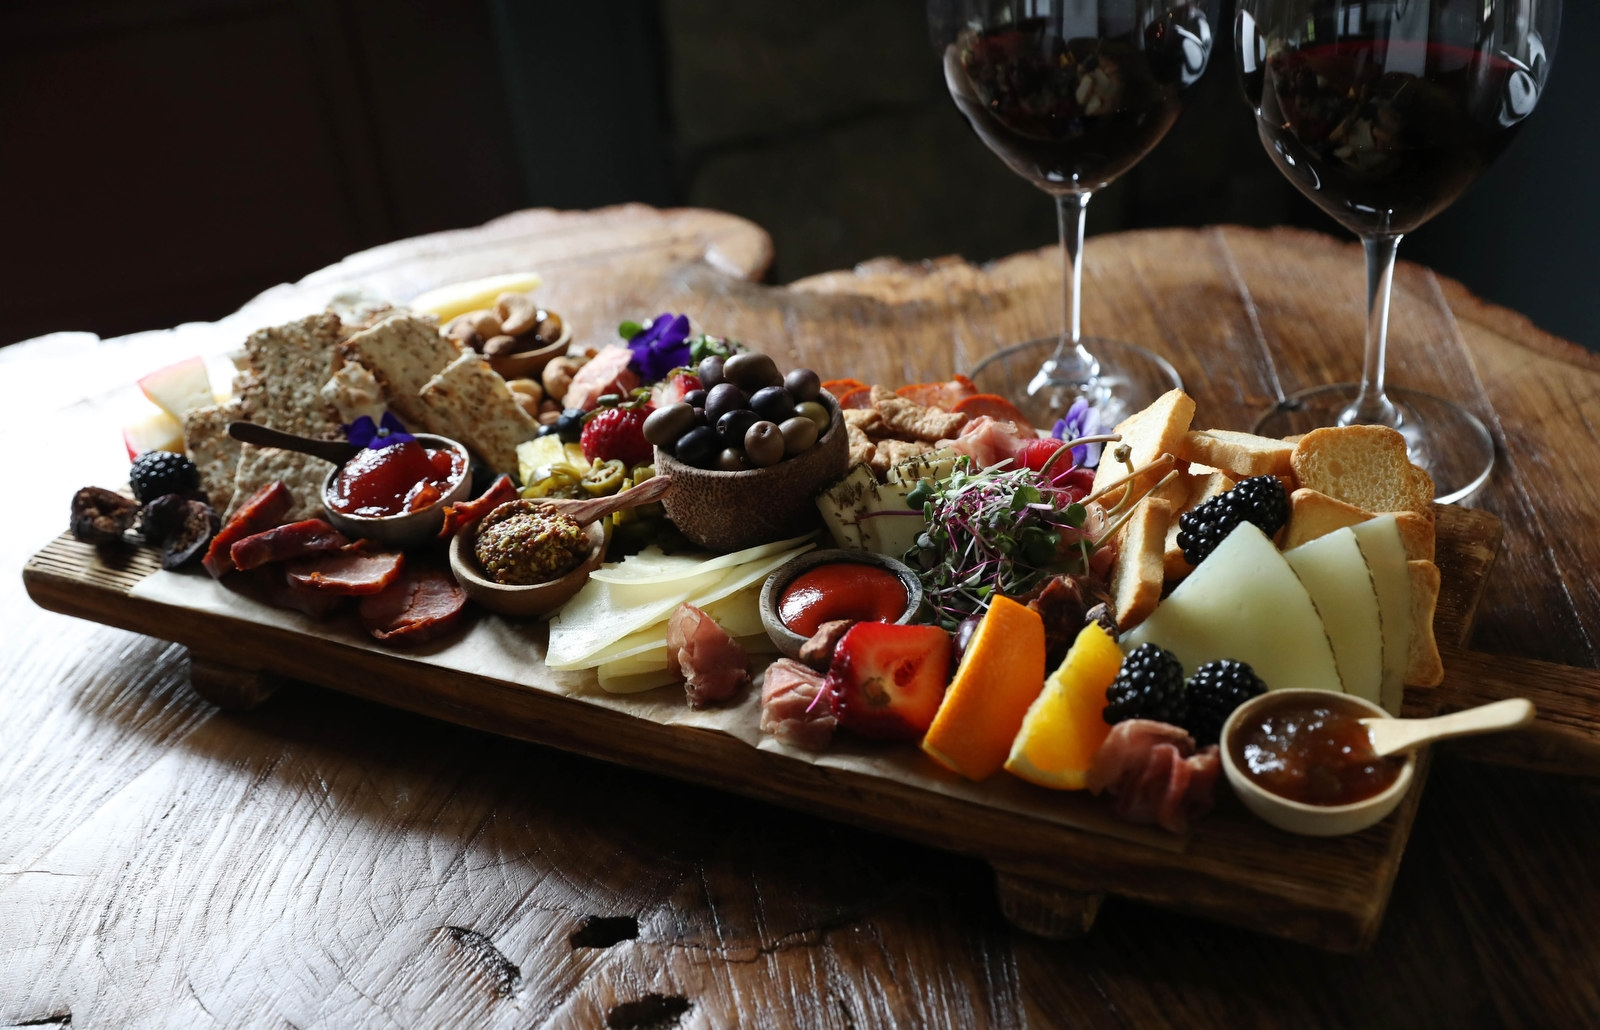 The Artisanal Chef's Board is designed to share. It includes sausages chourico, linguica and prosunto, cheeses from Portugal, jams and jellies, nuts, fruits, olives, bread and crackers.